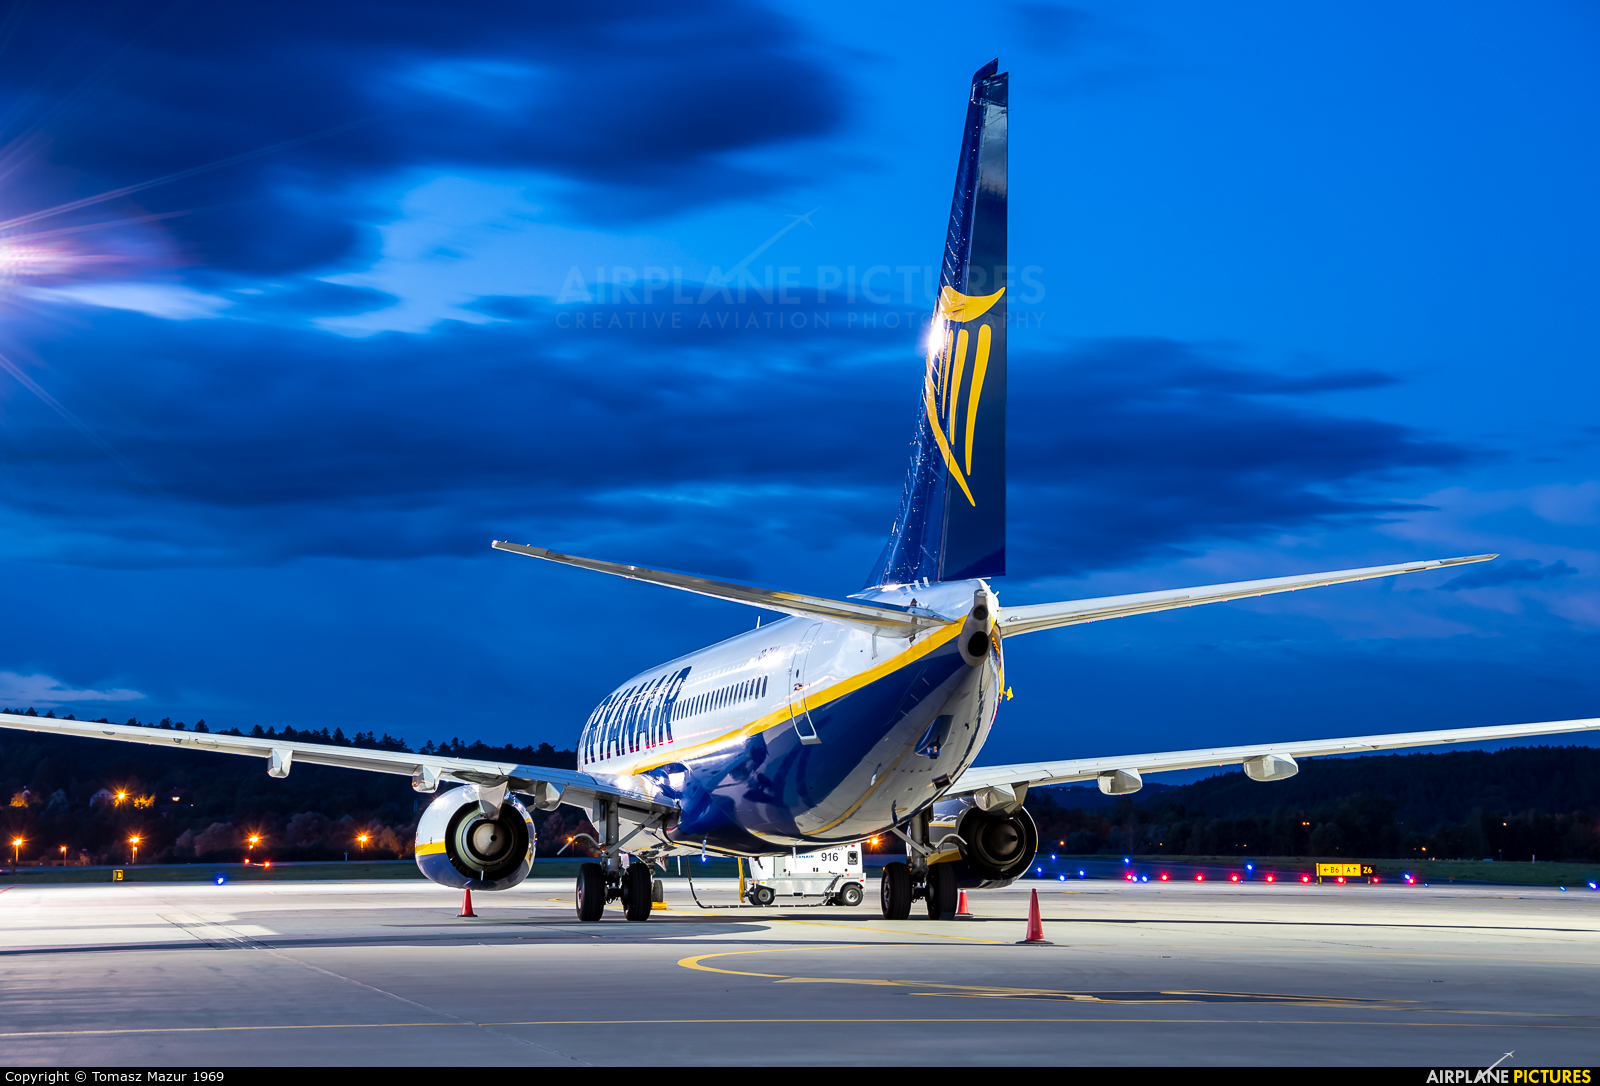 Ryanair Sun SP-RKW aircraft at Kraków - John Paul II Intl